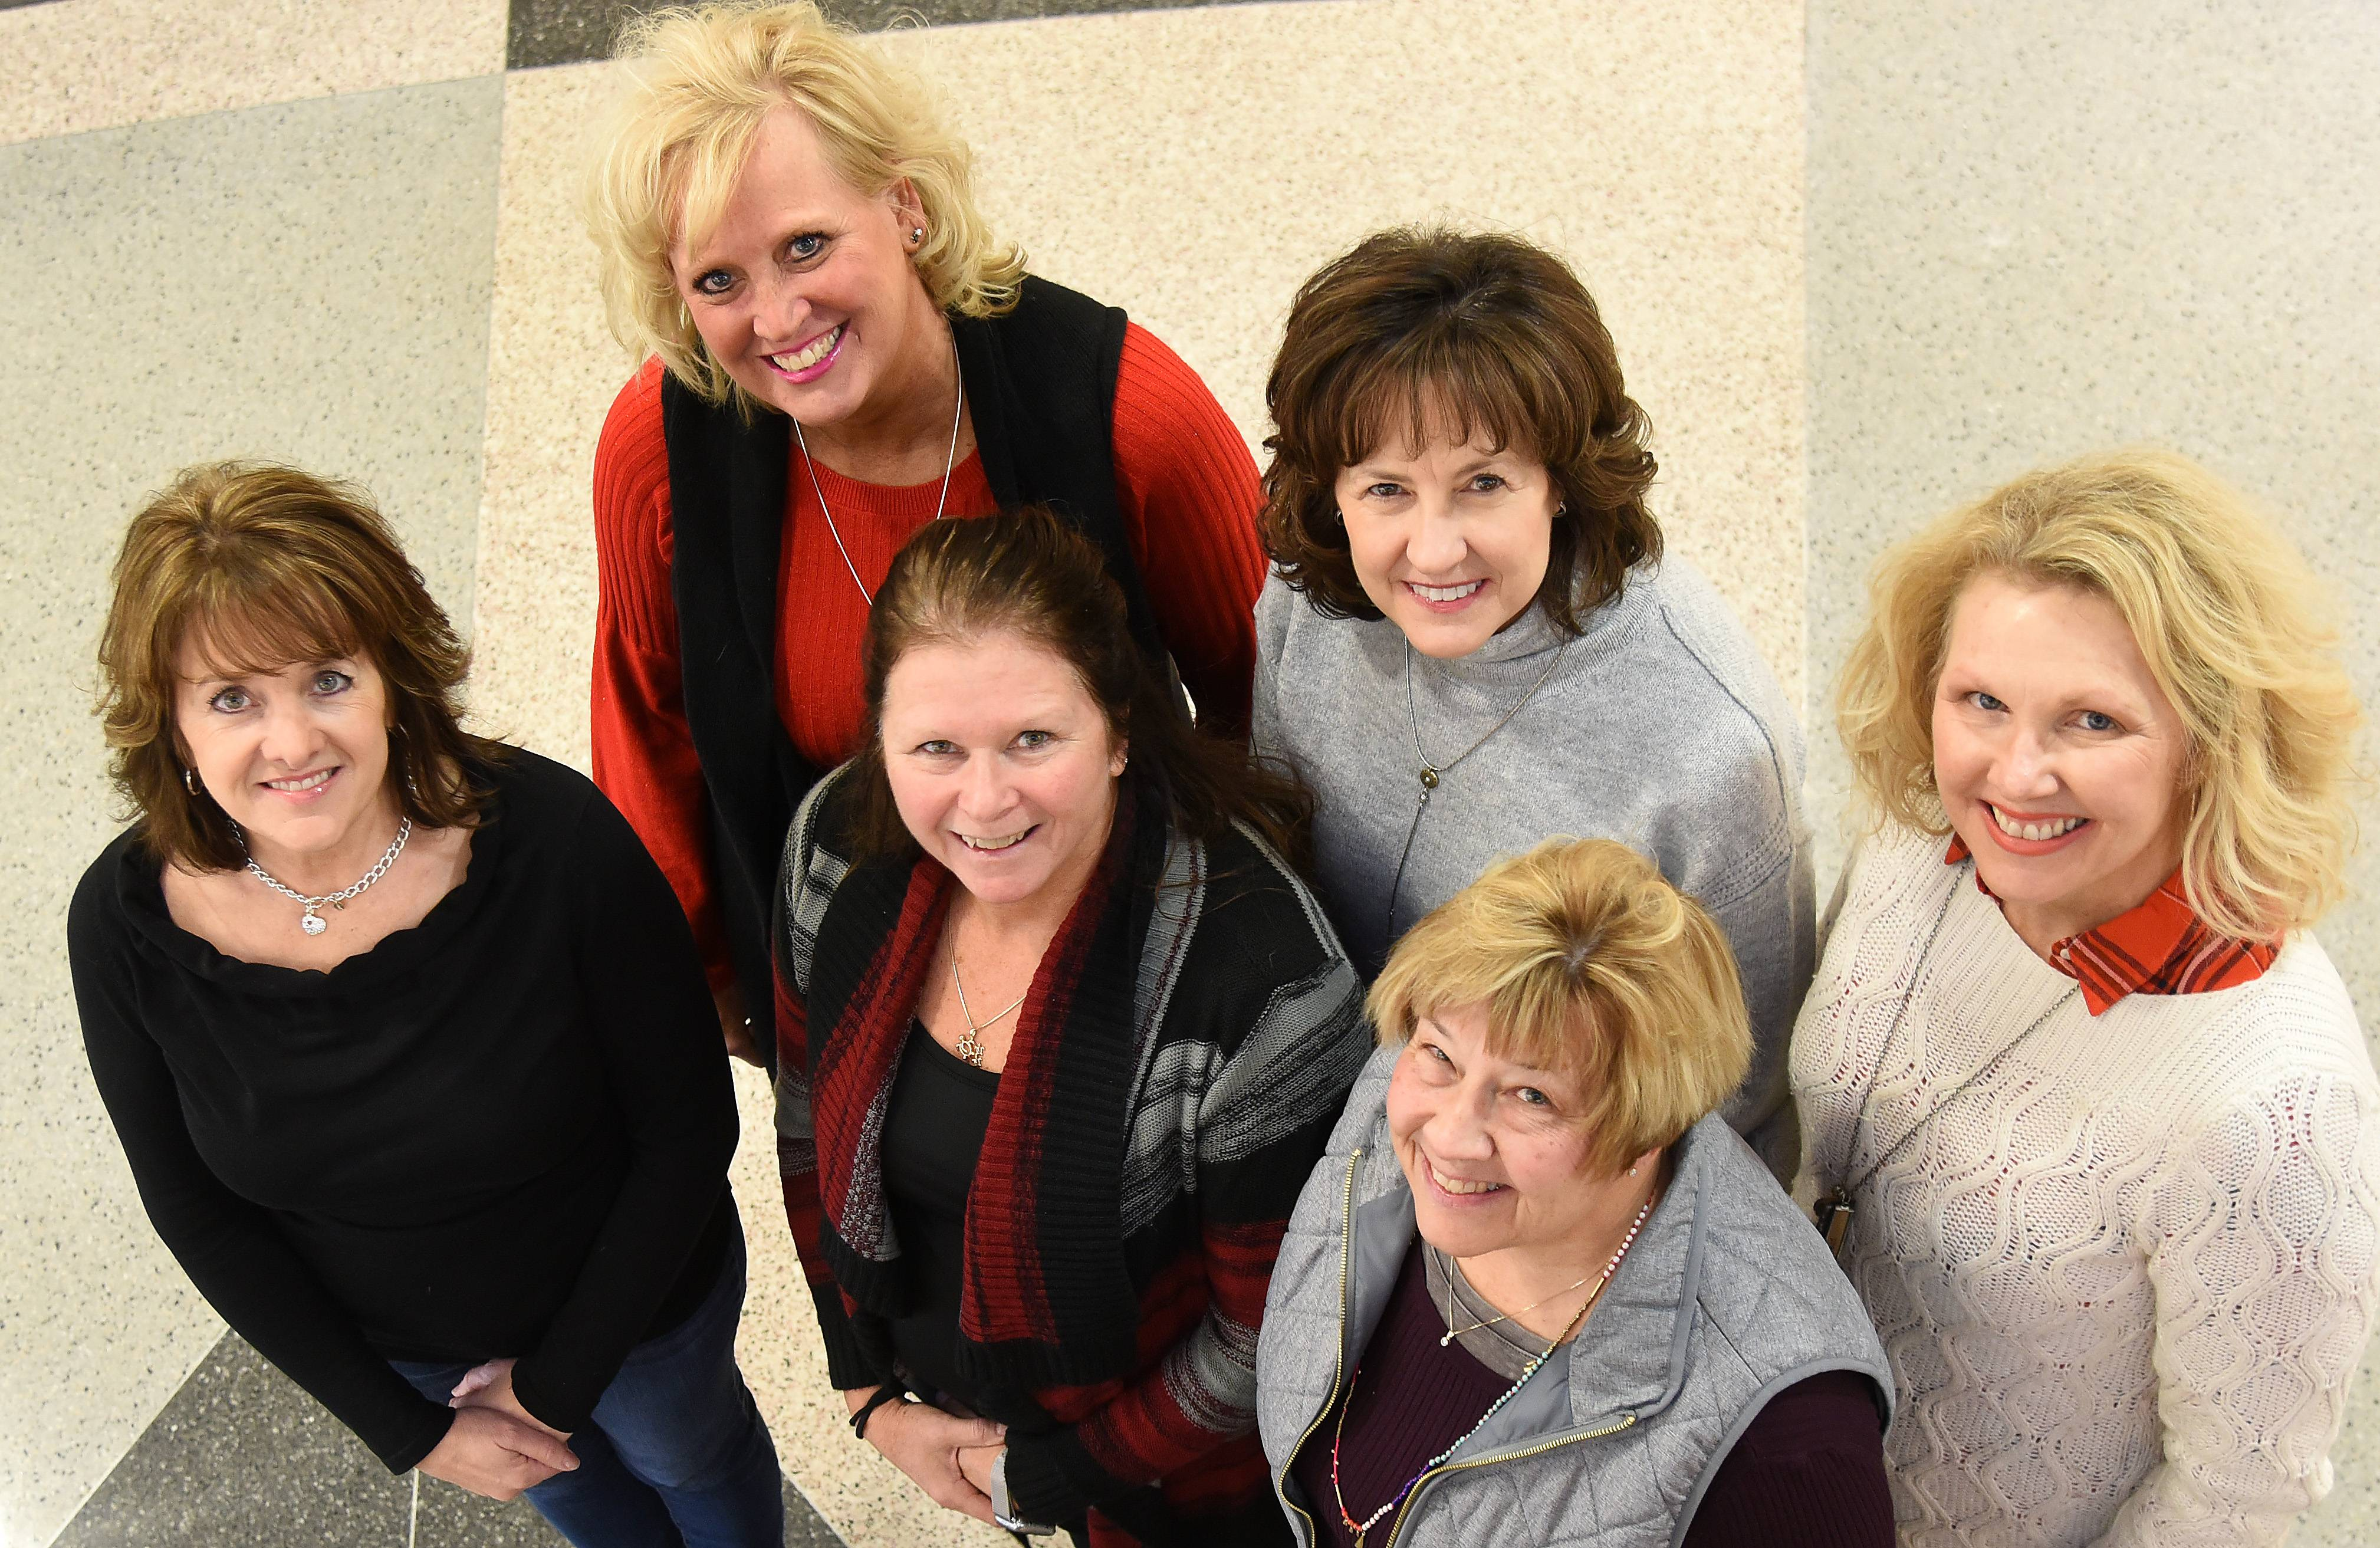 A group of women started a Fox Valley Military Moms on a Mission group last summer and held five collection drives in 2017 to donate items to members of the military. Pictured, front row from left, are Tamara Scaffidi of St. Charles, Kim Rodriguez of Elgin, Terri Lynn Johnson of Elgin. Back row from left, Nancy Meaney of South Elgin, Marianne Jamison of St. Charles and Jackie Hovious of St. Charles.